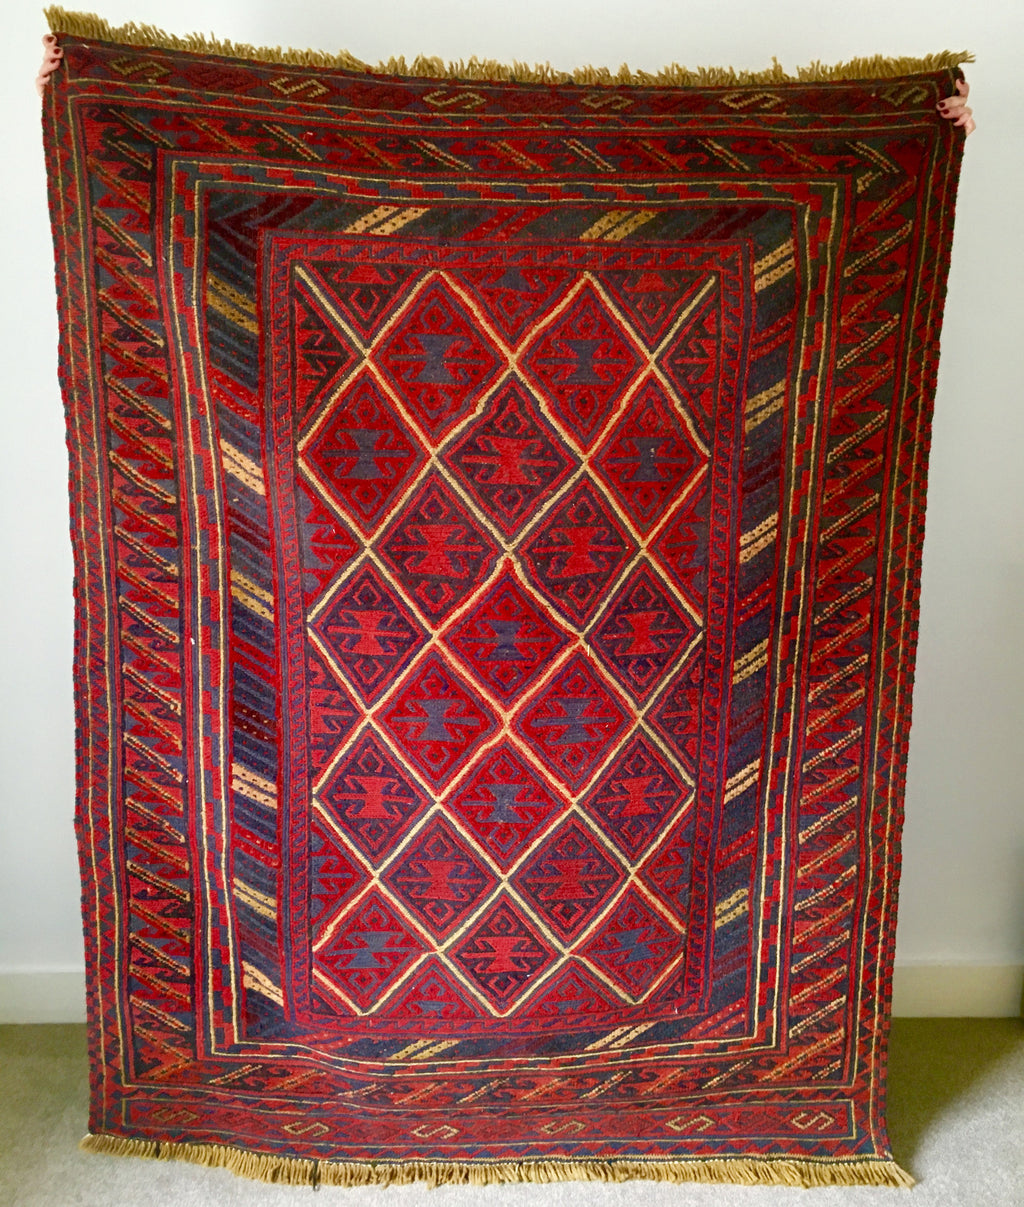 ethically sourced sustainable preloved vintage rugs